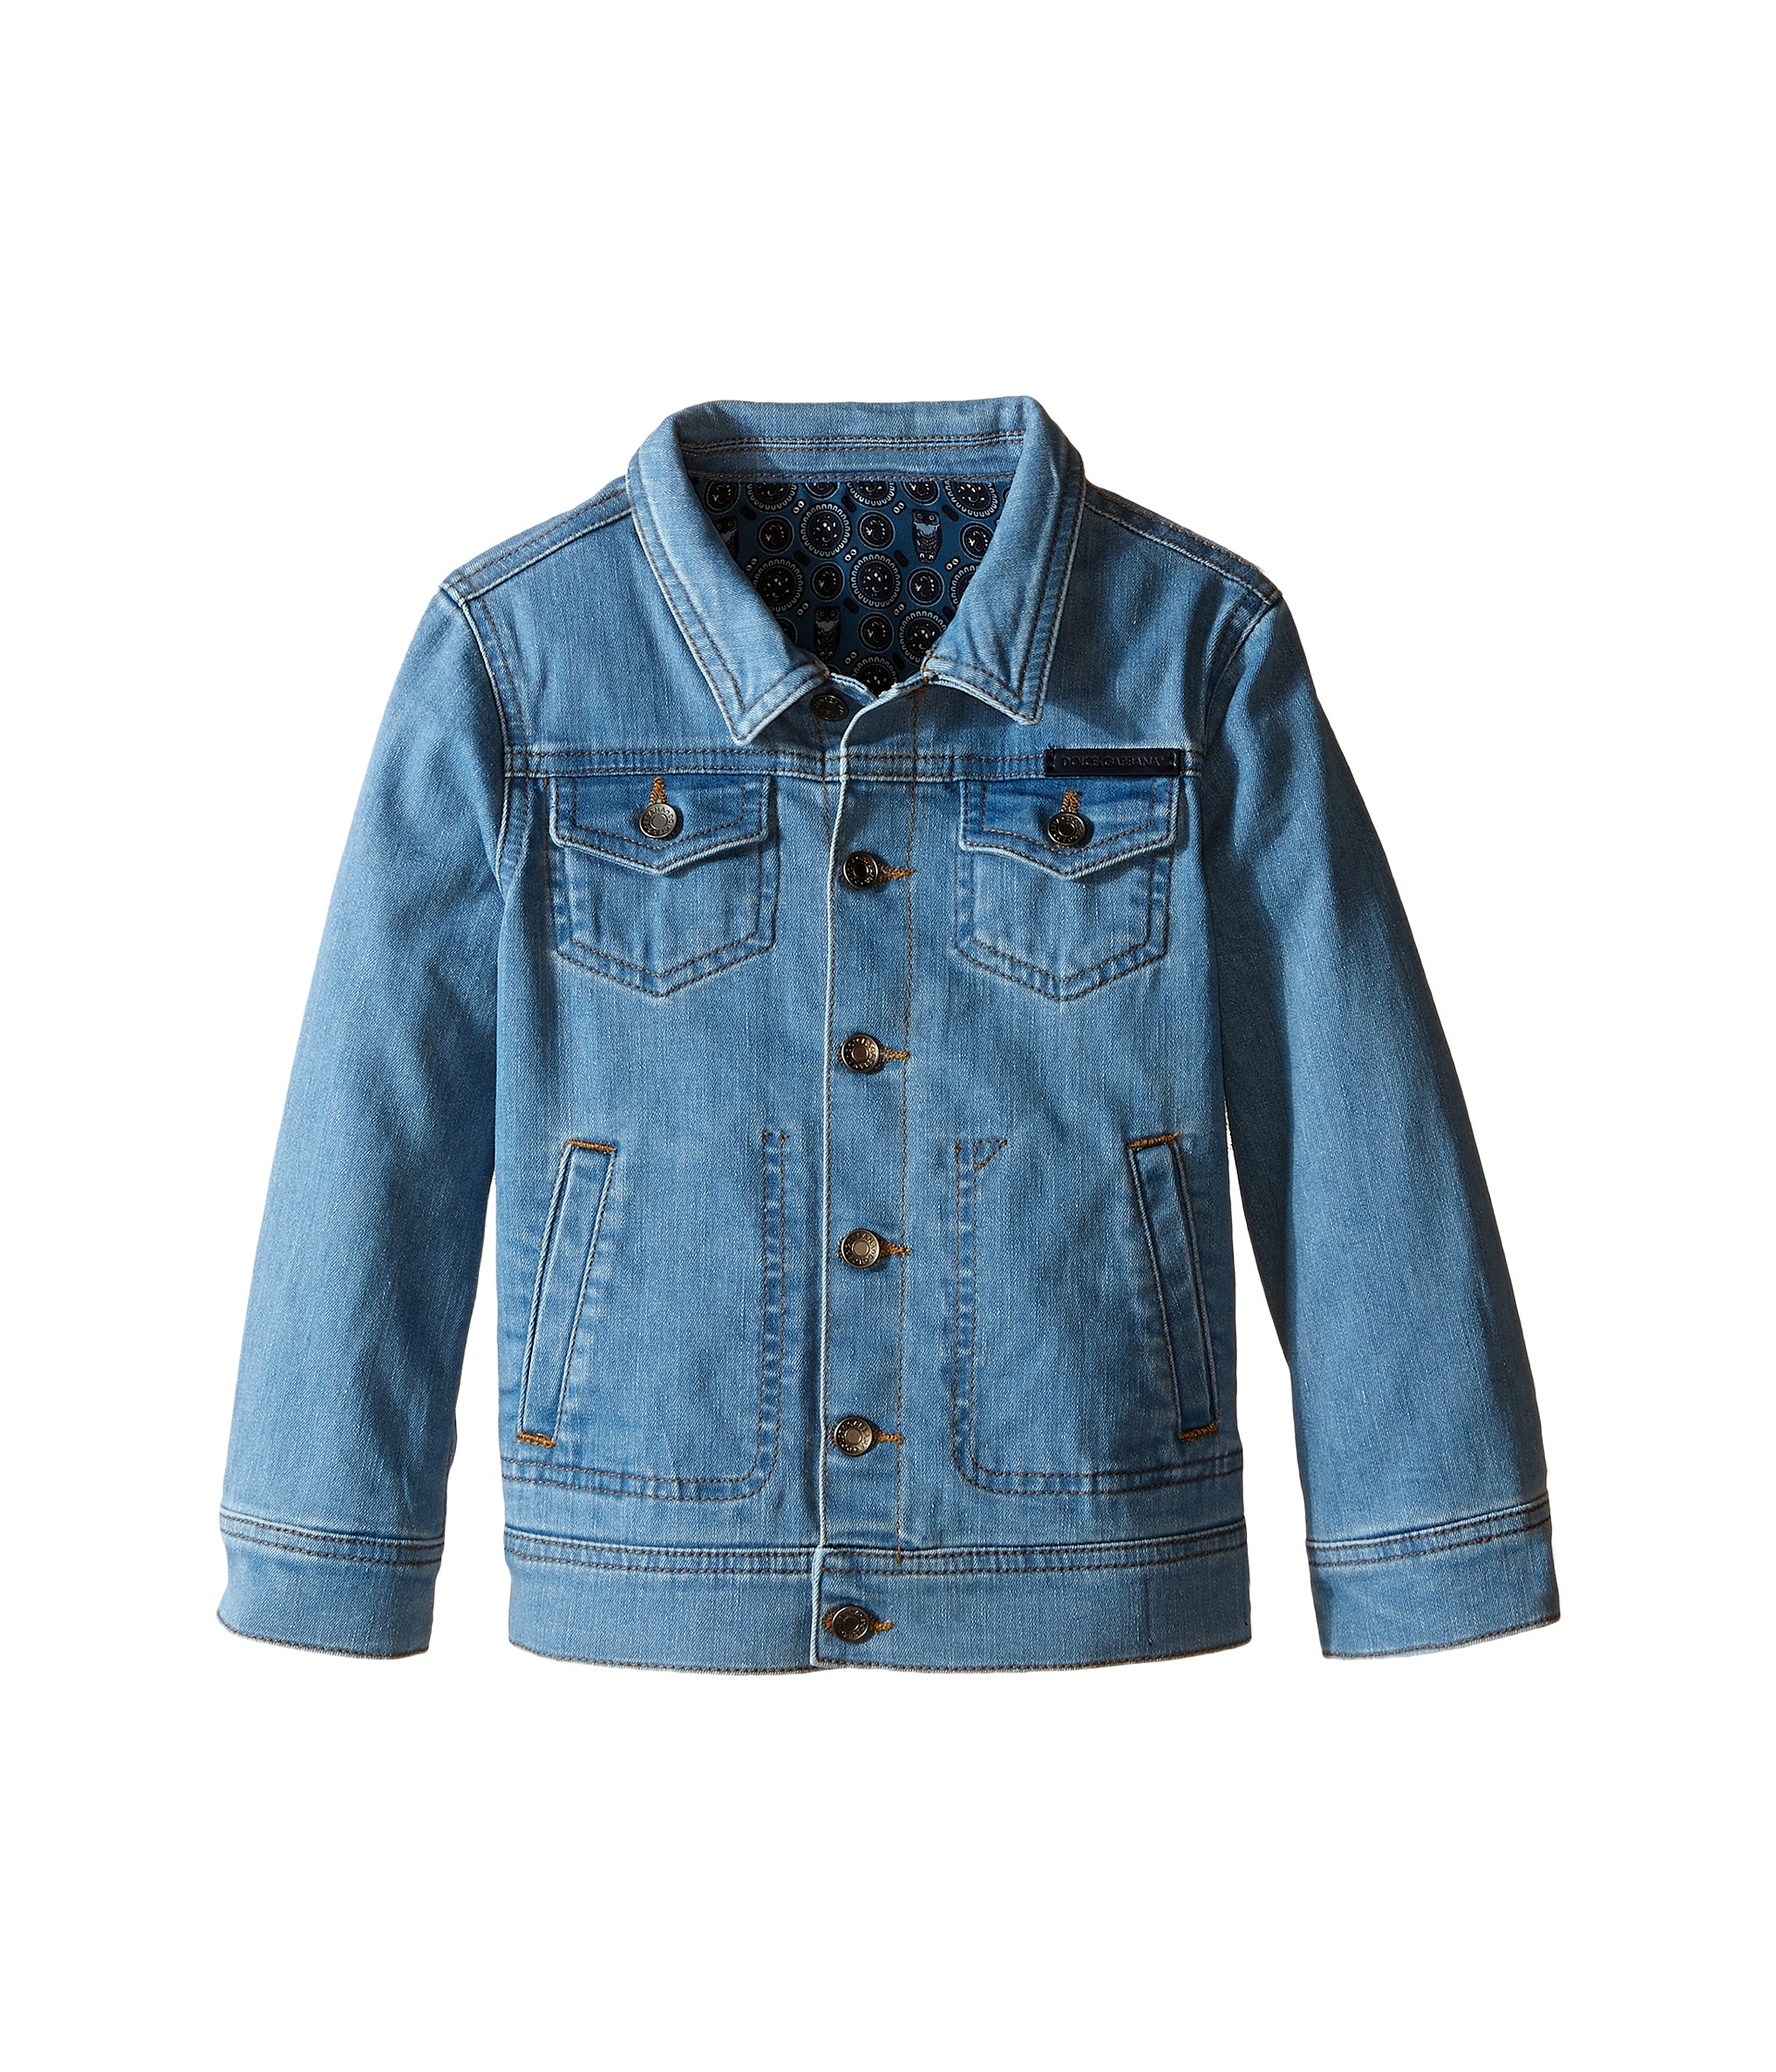 Jean jackets are a great wardrobe staple for kids, as denim is tough and can withstand the everyday play of your little one. Letting your child decorate her jean jacket is a fun activity that can provide a sense of self-expression.